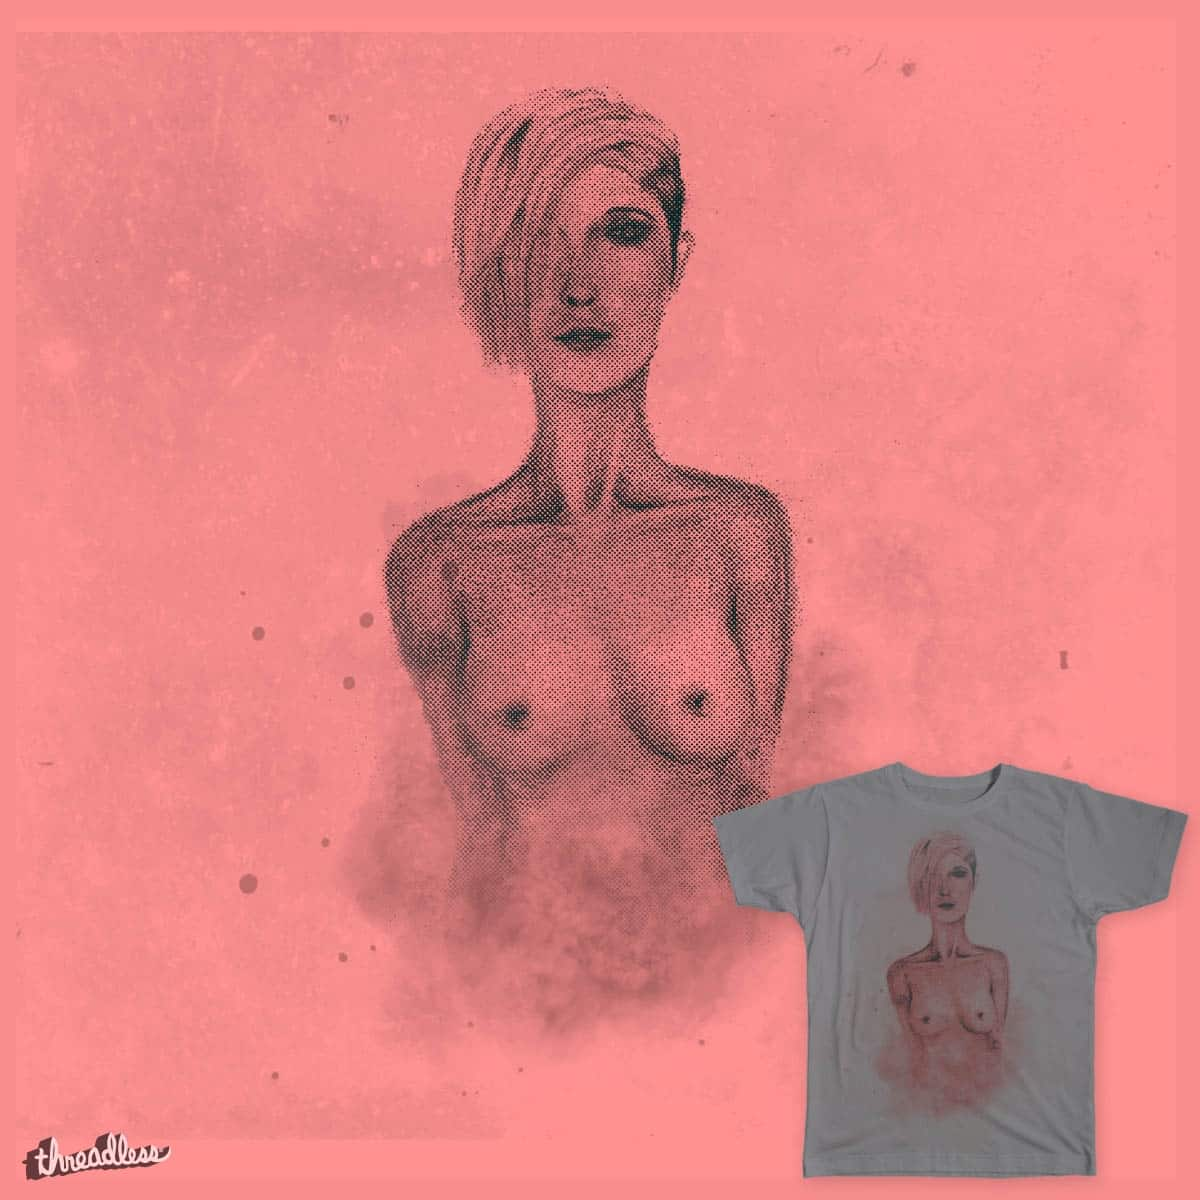 free by ROMA.BLACKHEARTED on Threadless